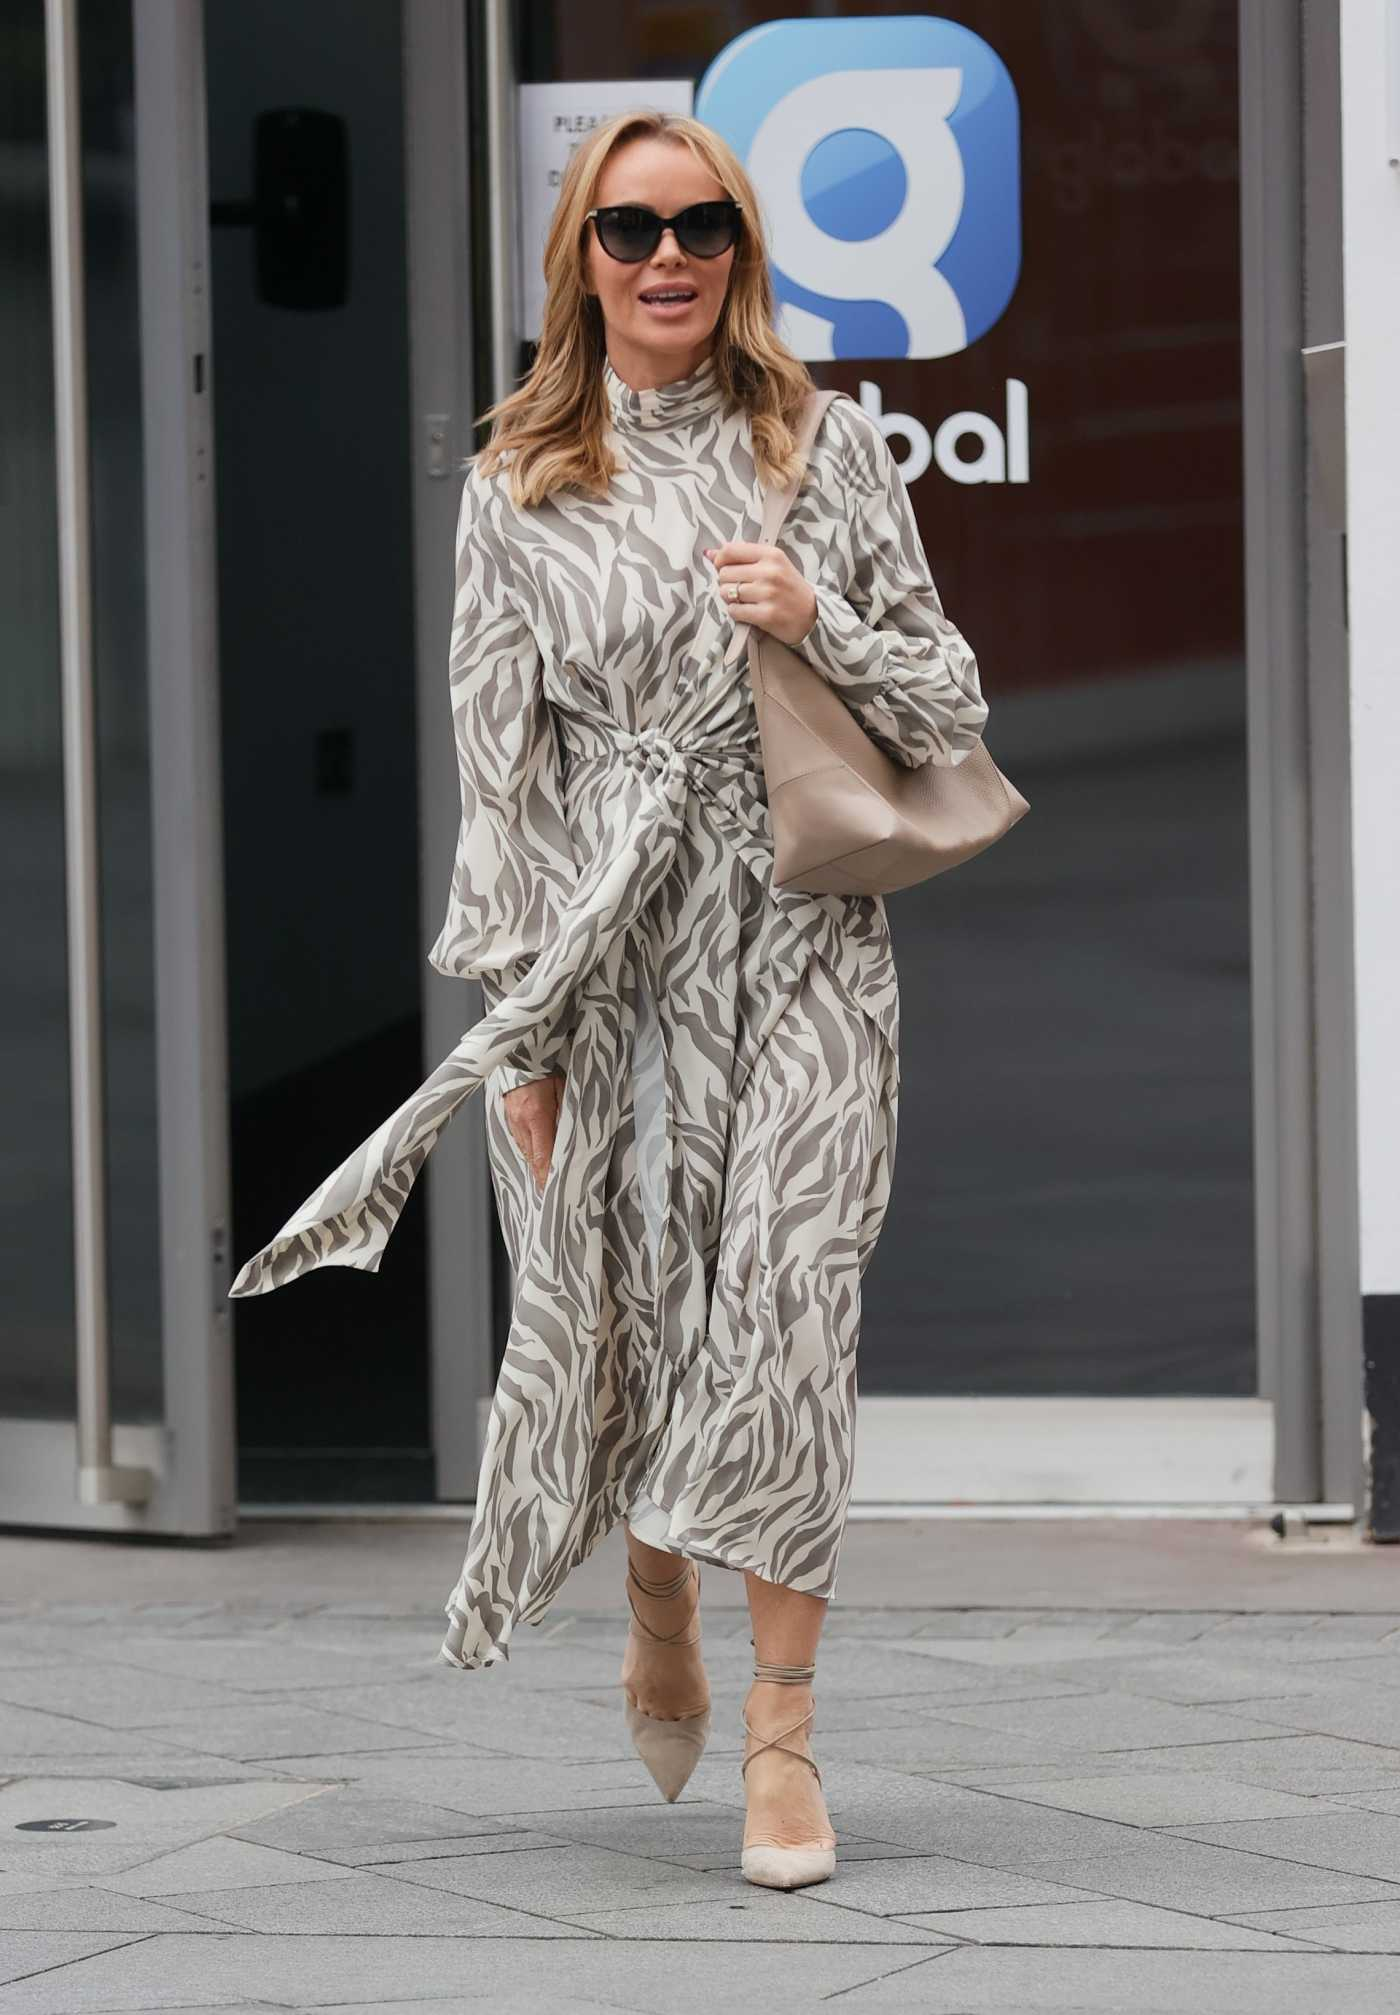 Amanda Holden in a Flowing Monochrome Dress Leaves the Heart Radio in London 05/20/2021